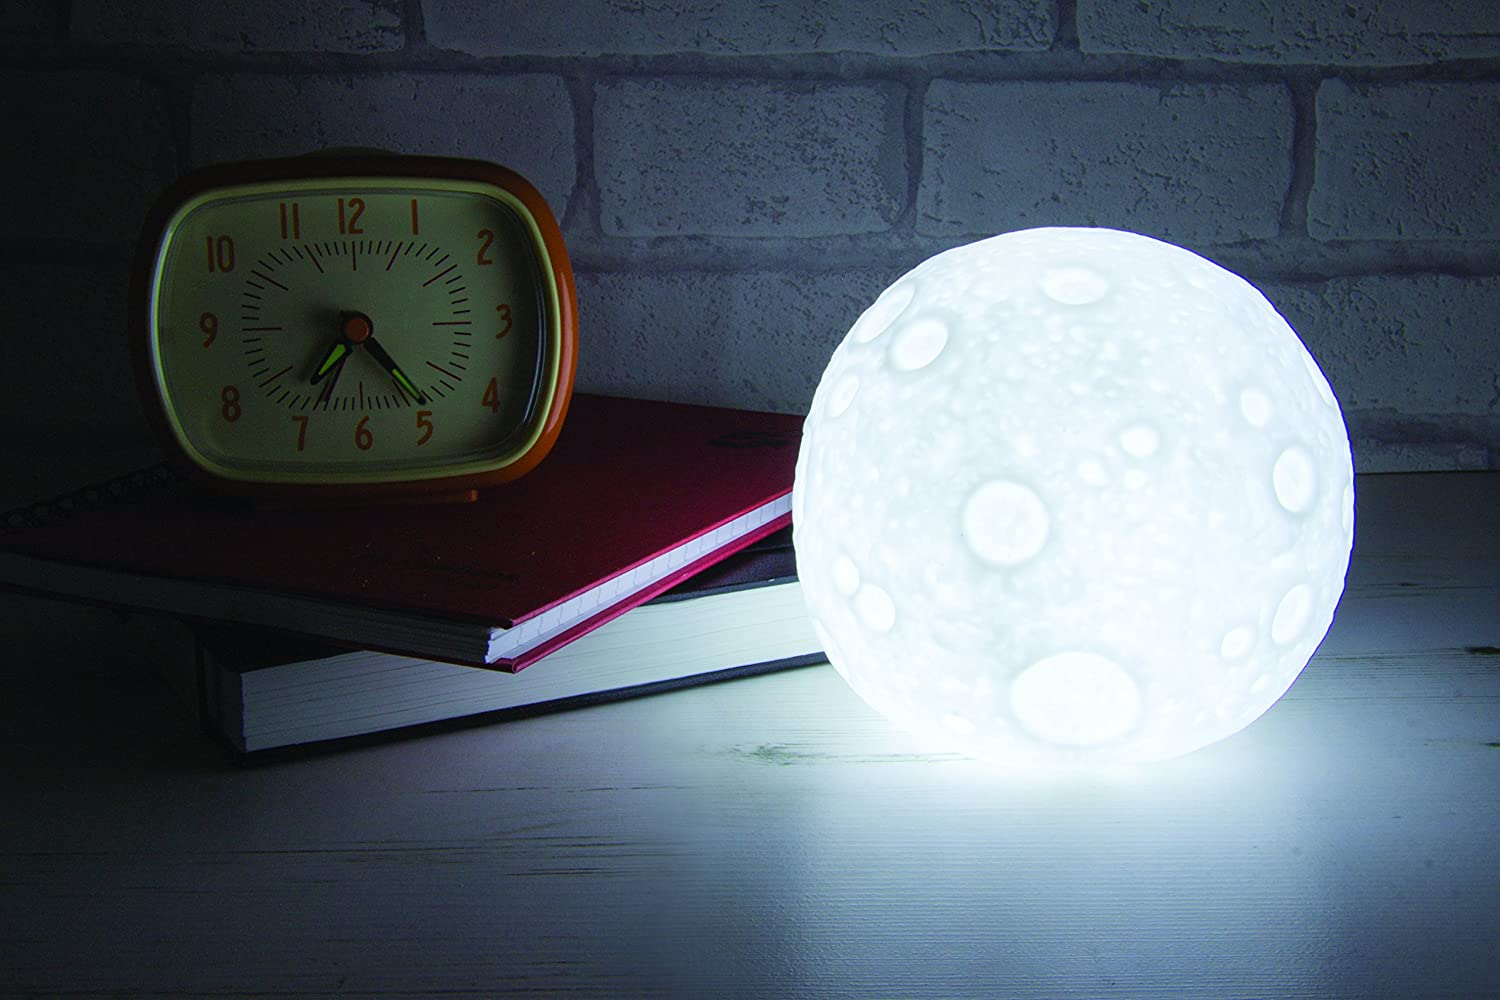 Luna Light Lampen : Moon lamp: paladone: amazon.de: küche & haushalt